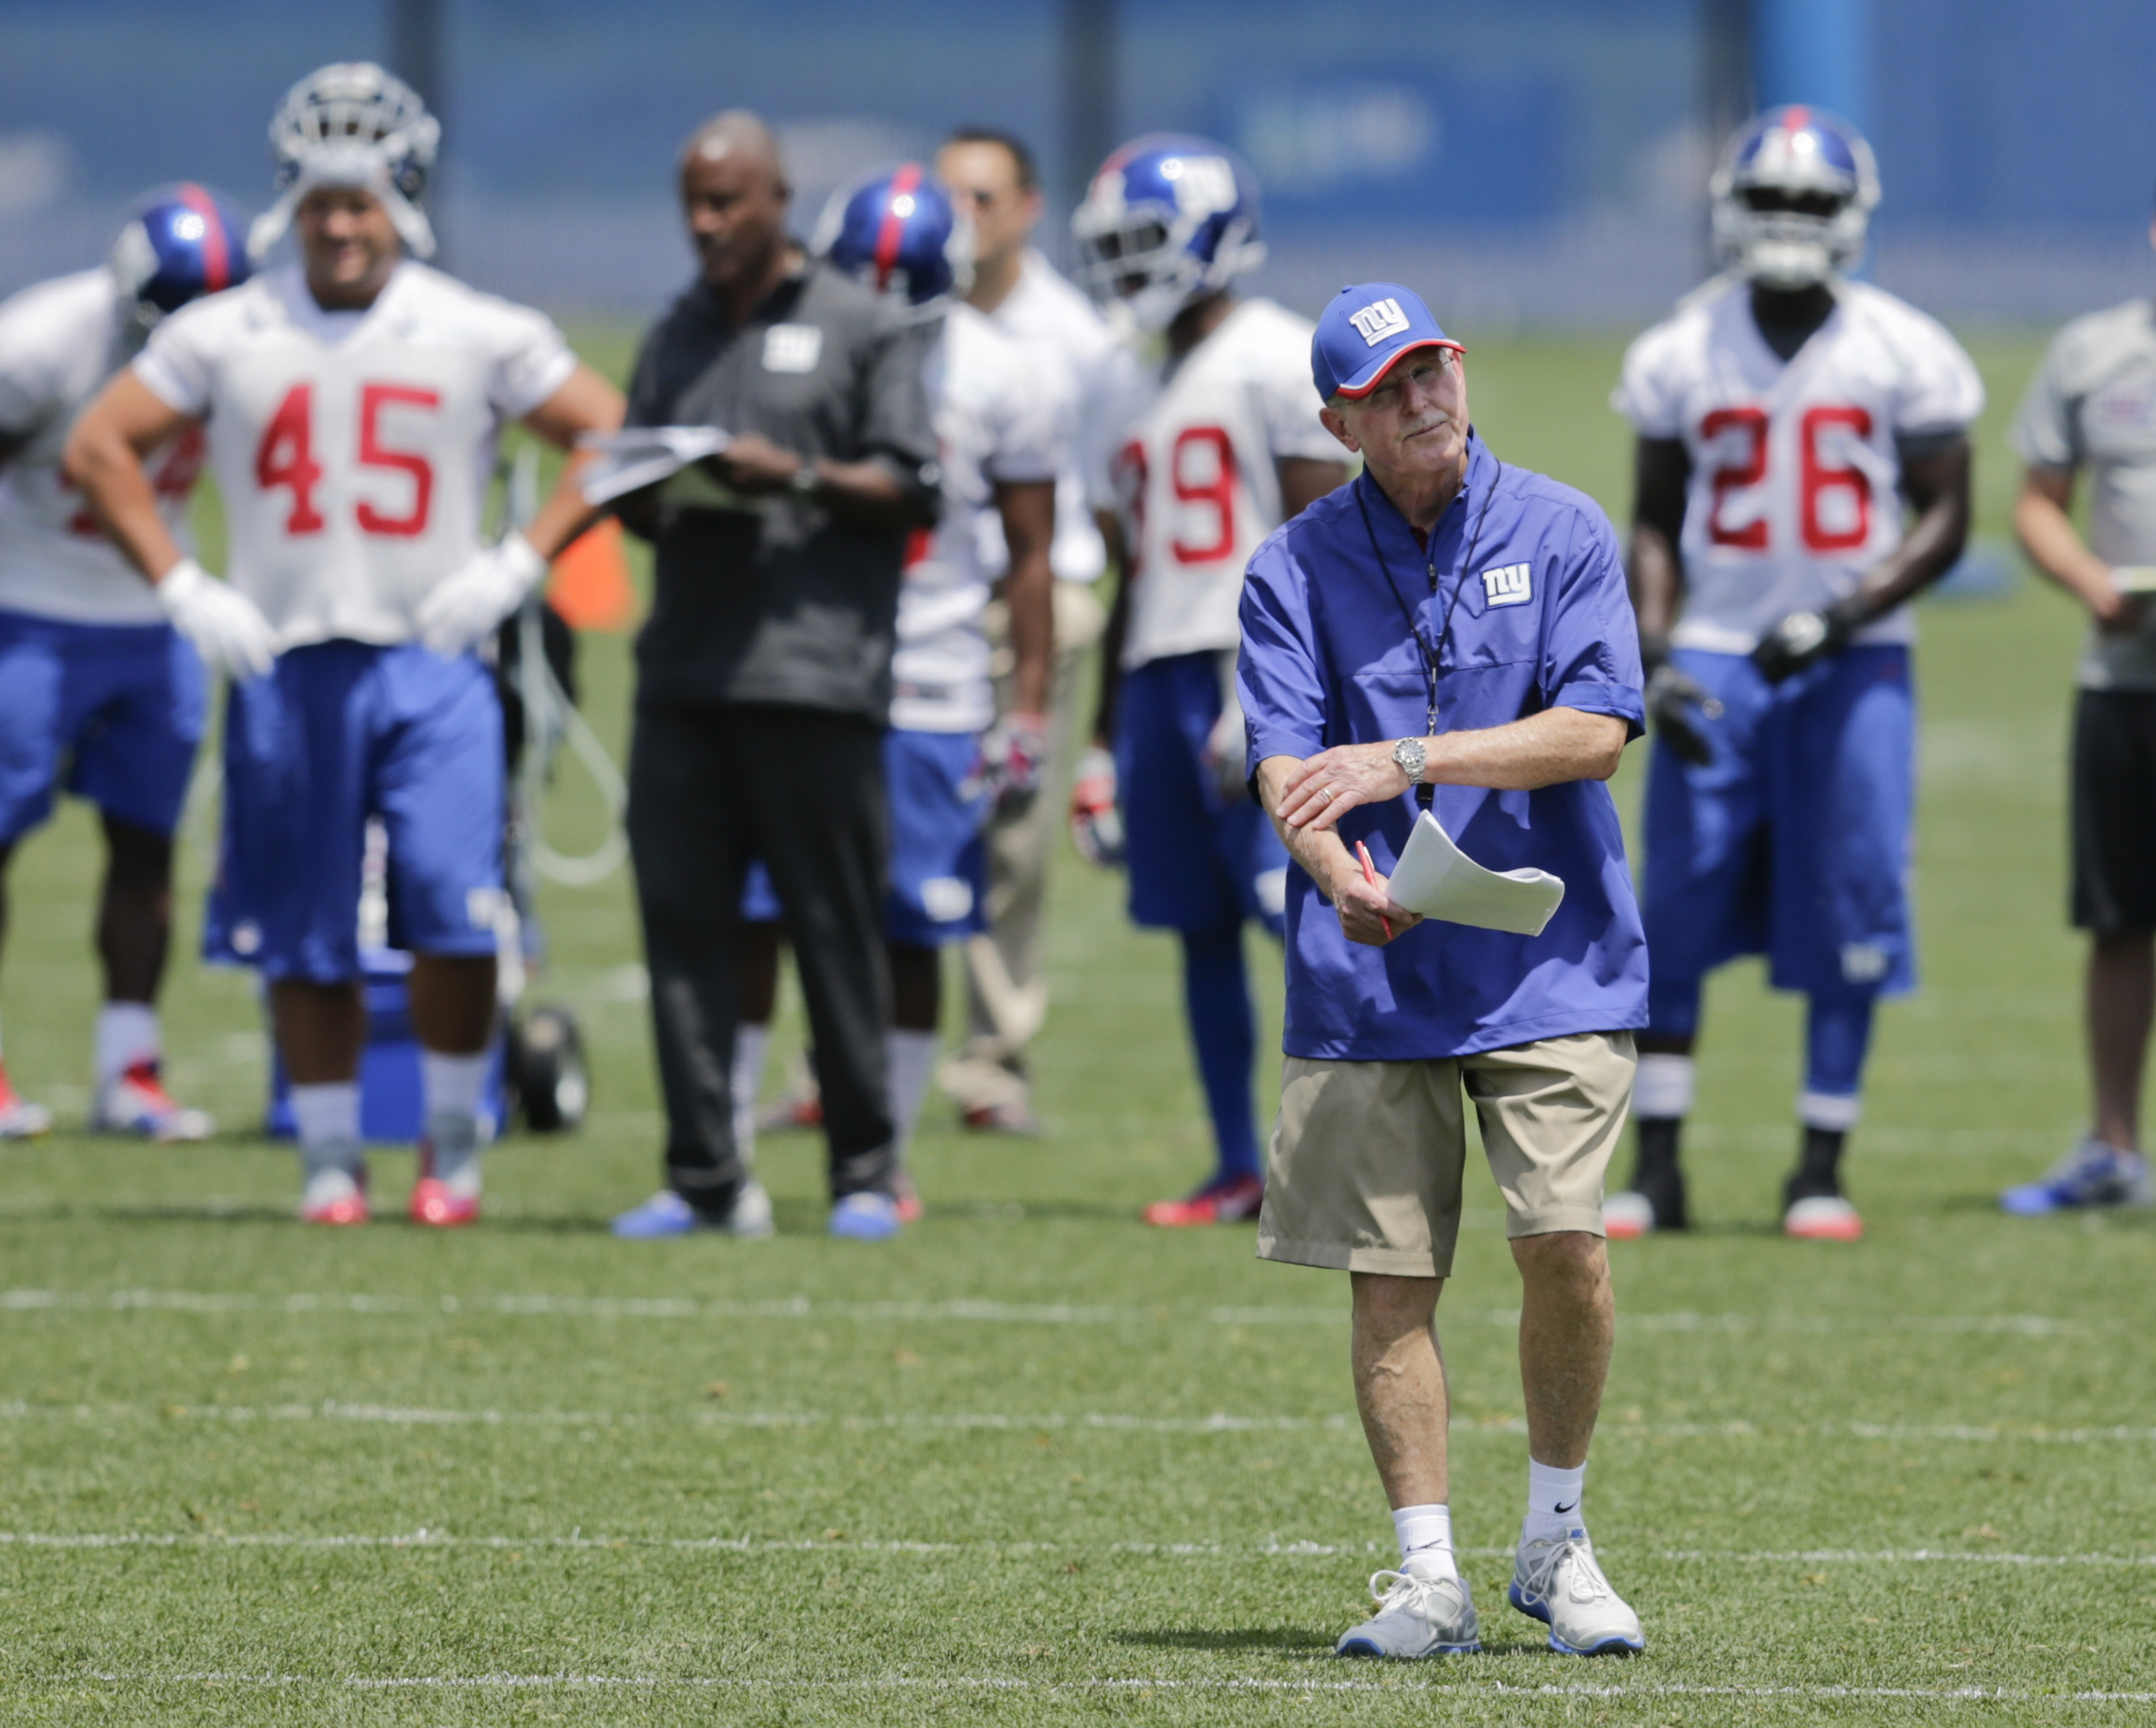 New York Giants head coach Tom Coughlin watches his team during NFL football minicamp,  Wednesday, June 17, 2015, in East Rutherford, N.J.  (AP Photo/Frank Franklin II)